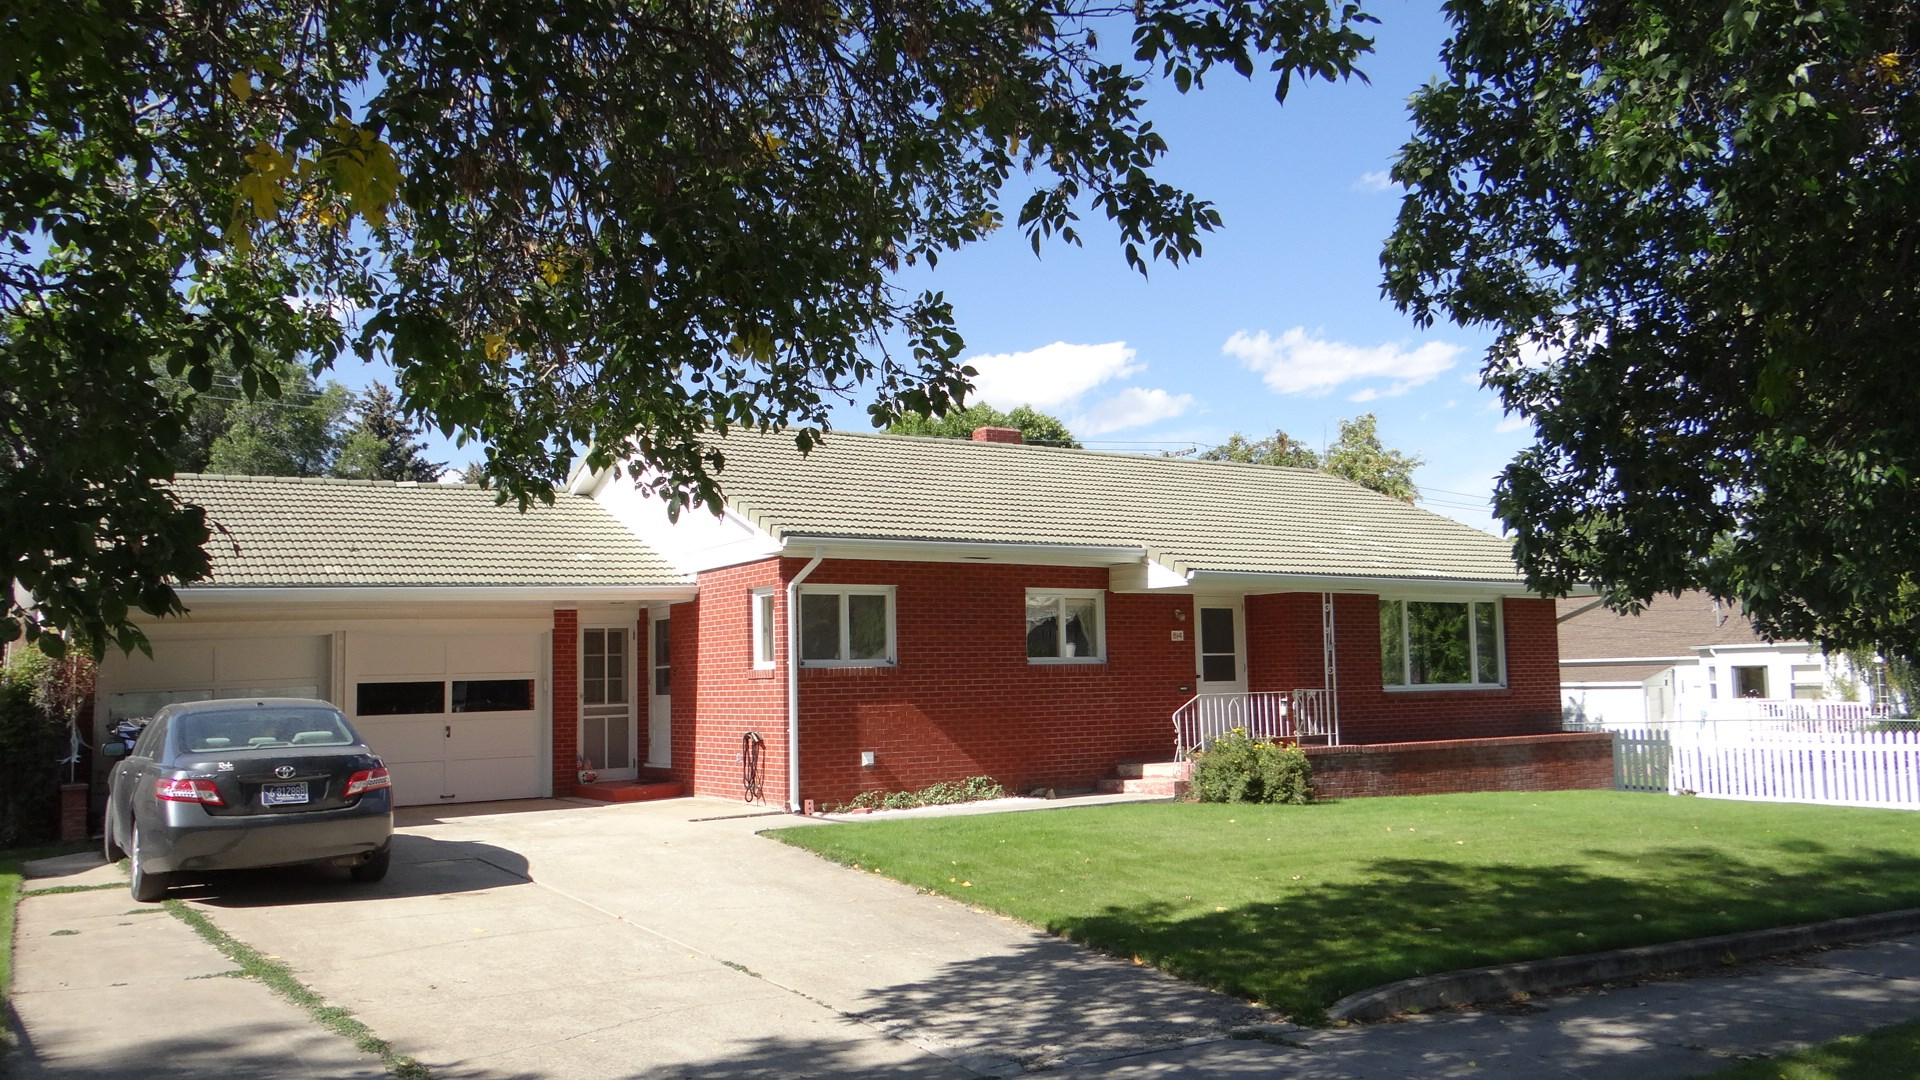 Central Montana Brick Home For Sale